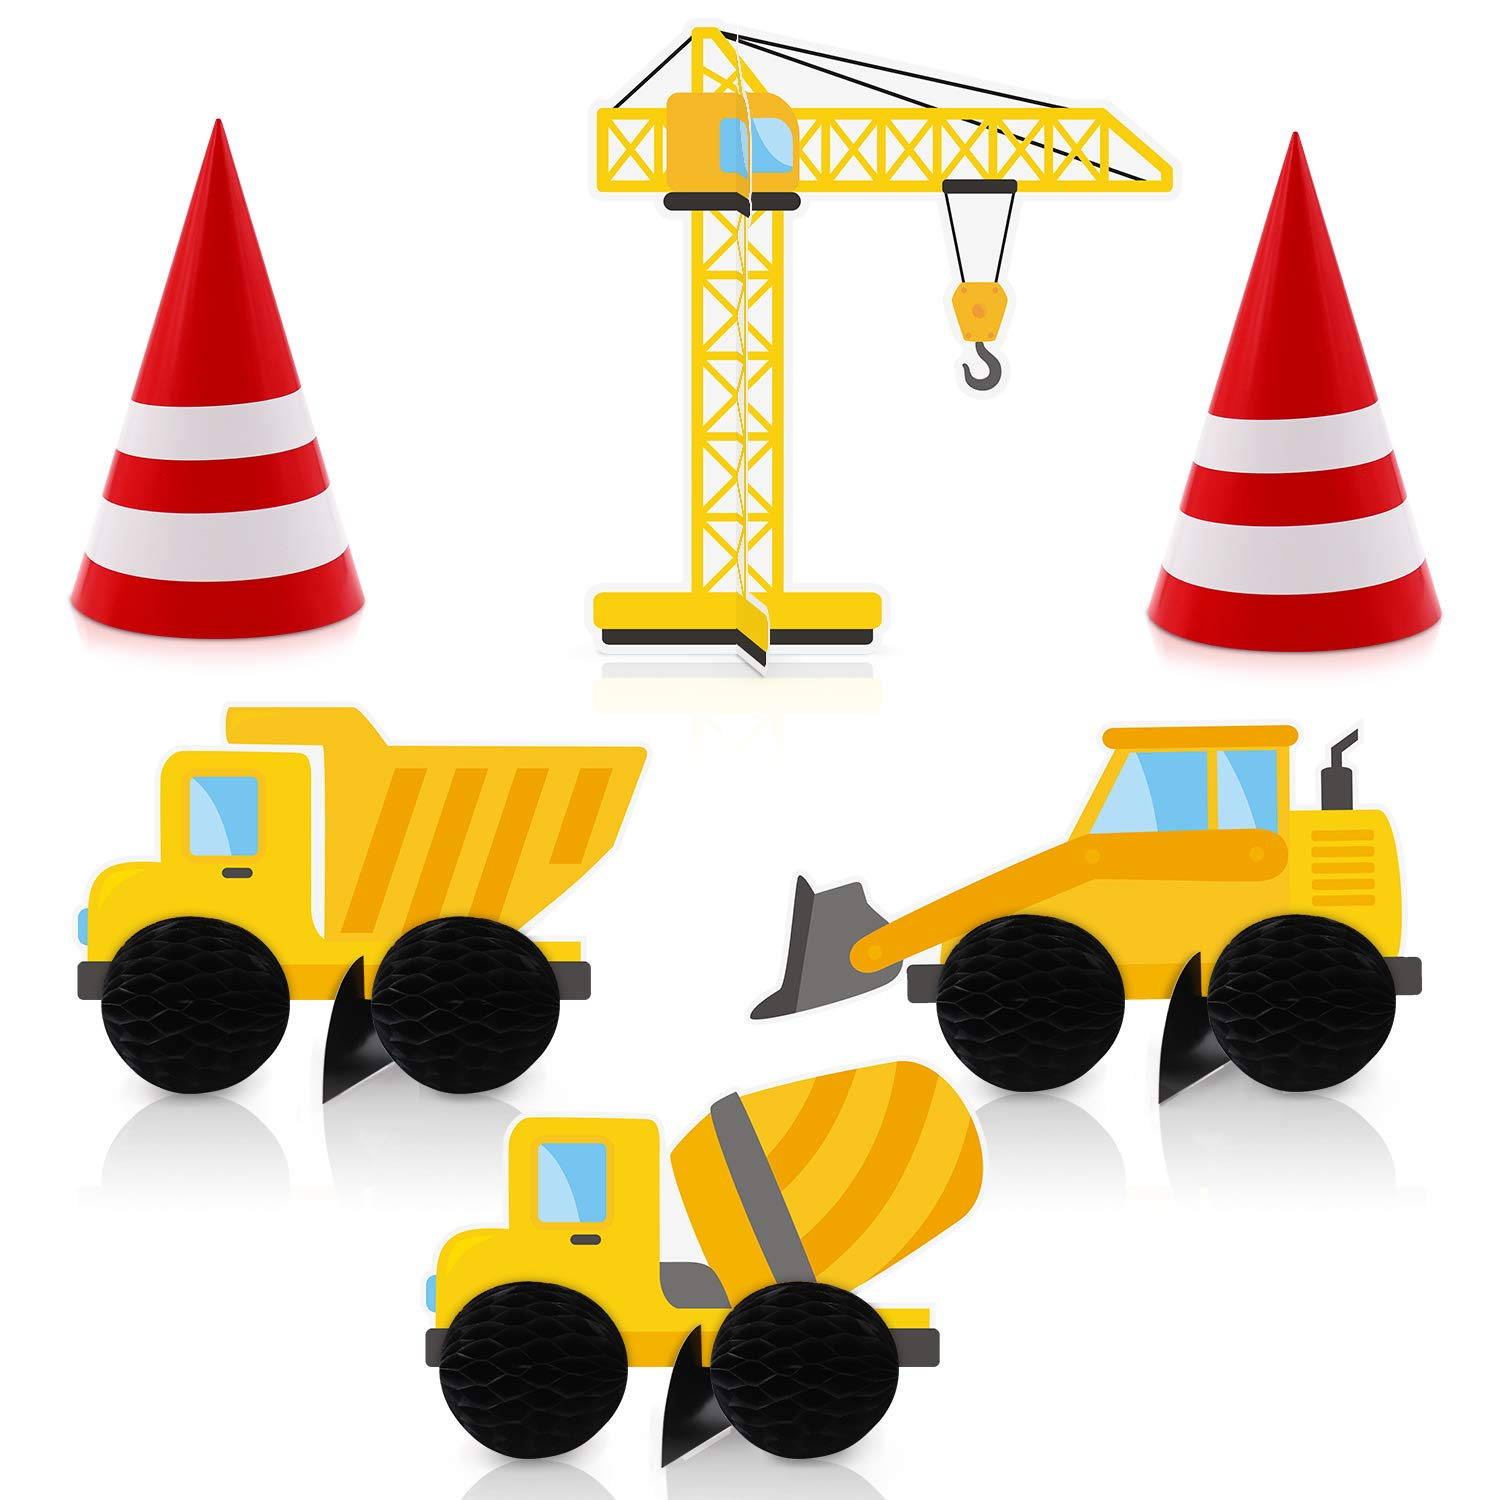 Construction Birthday Centerpiece Party Table Decoration Dump Truck Traffic Cones Signs Honeycomb Favors DIY Baby Shower Supplies